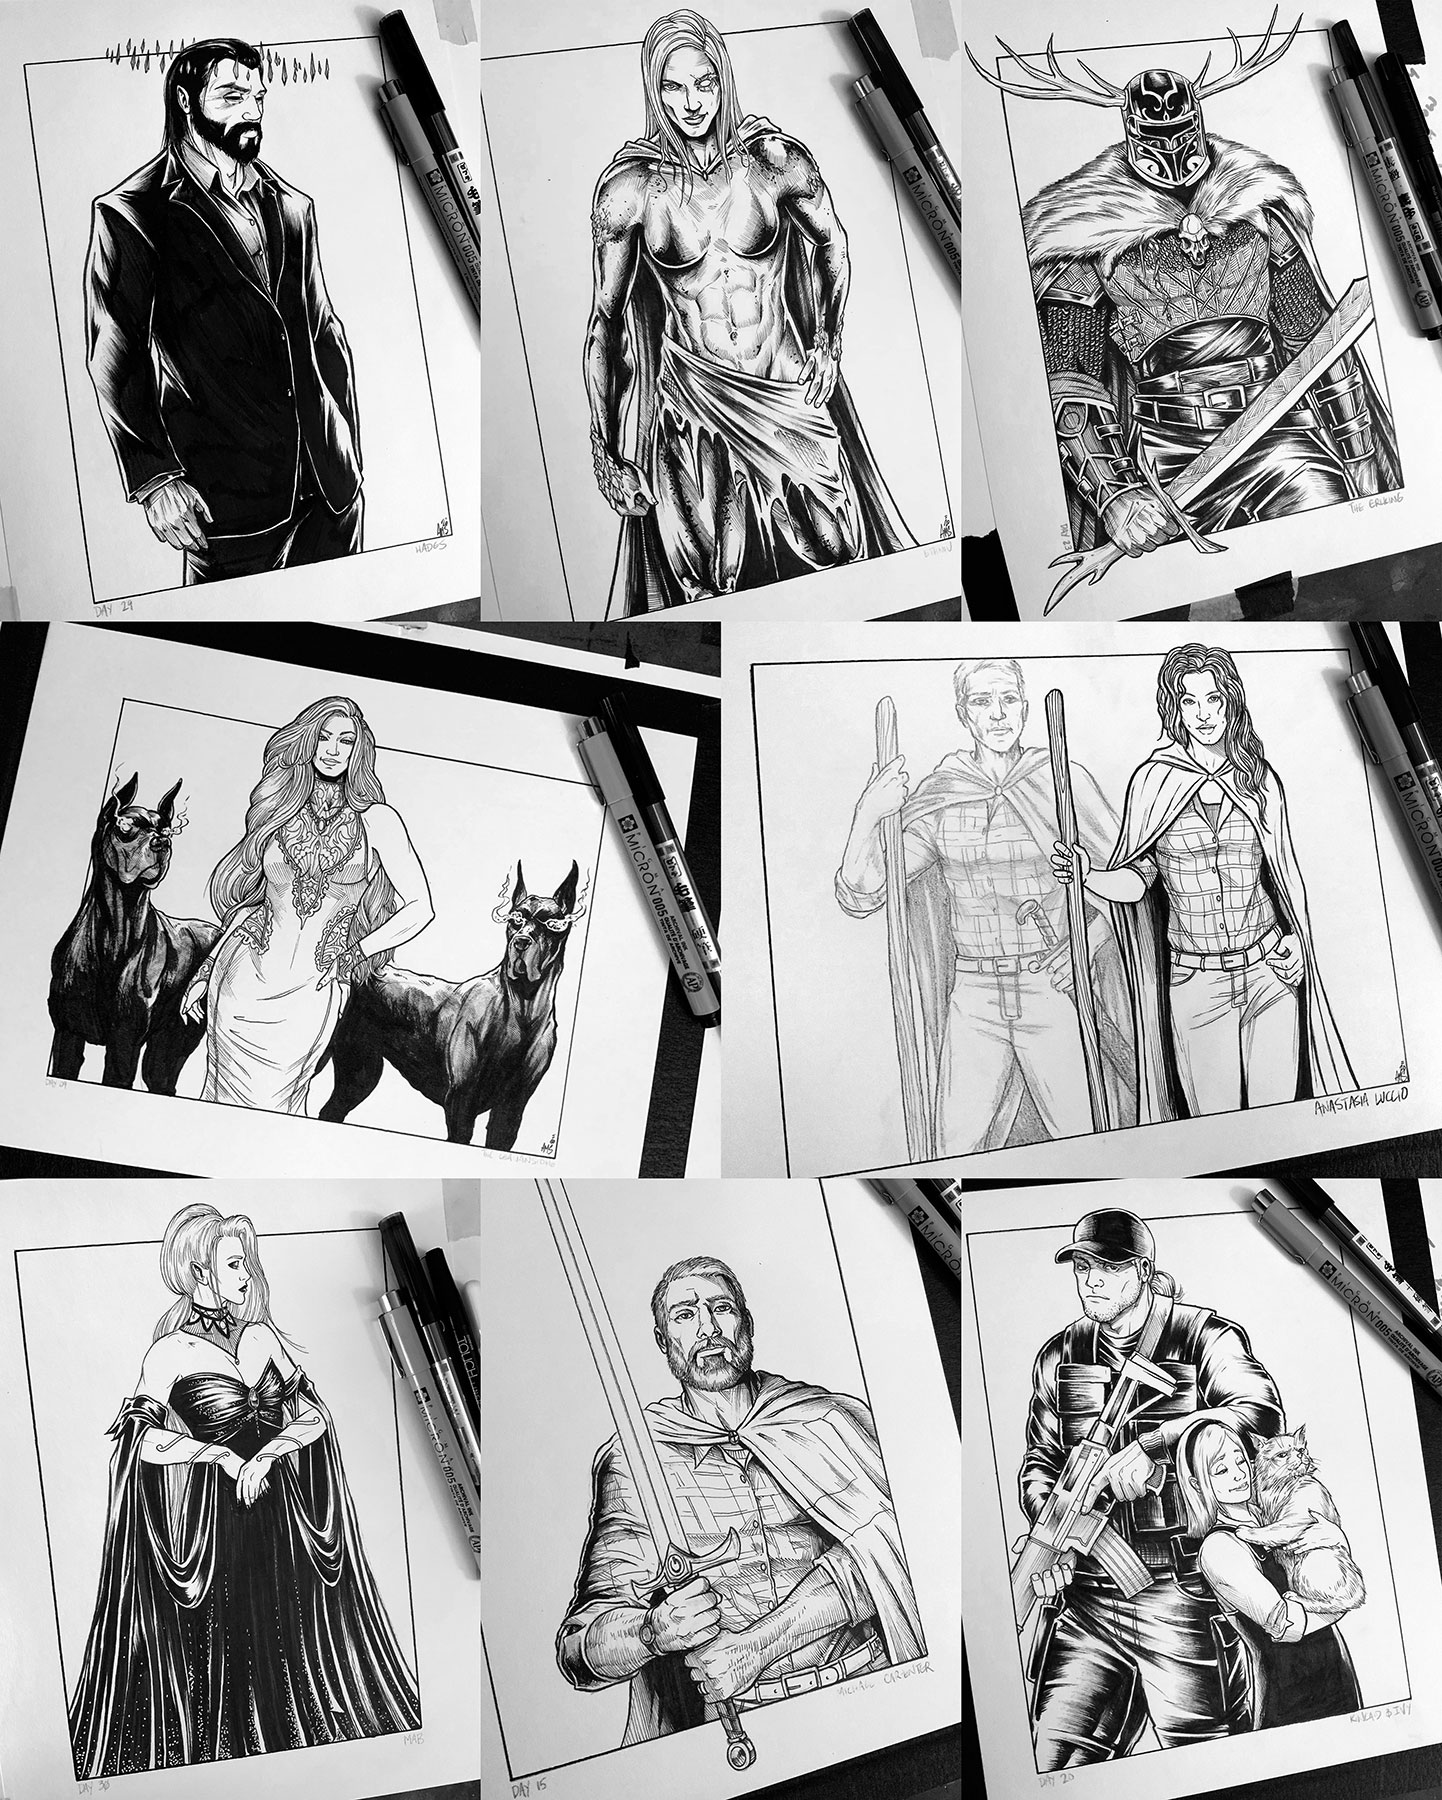 Collage of Adam Mathison-Sward illustrations for Inktober: Hades, Ethniu, the Erlking, Lea, Luccio, Mab, Michael, and Kincaid and Ivy